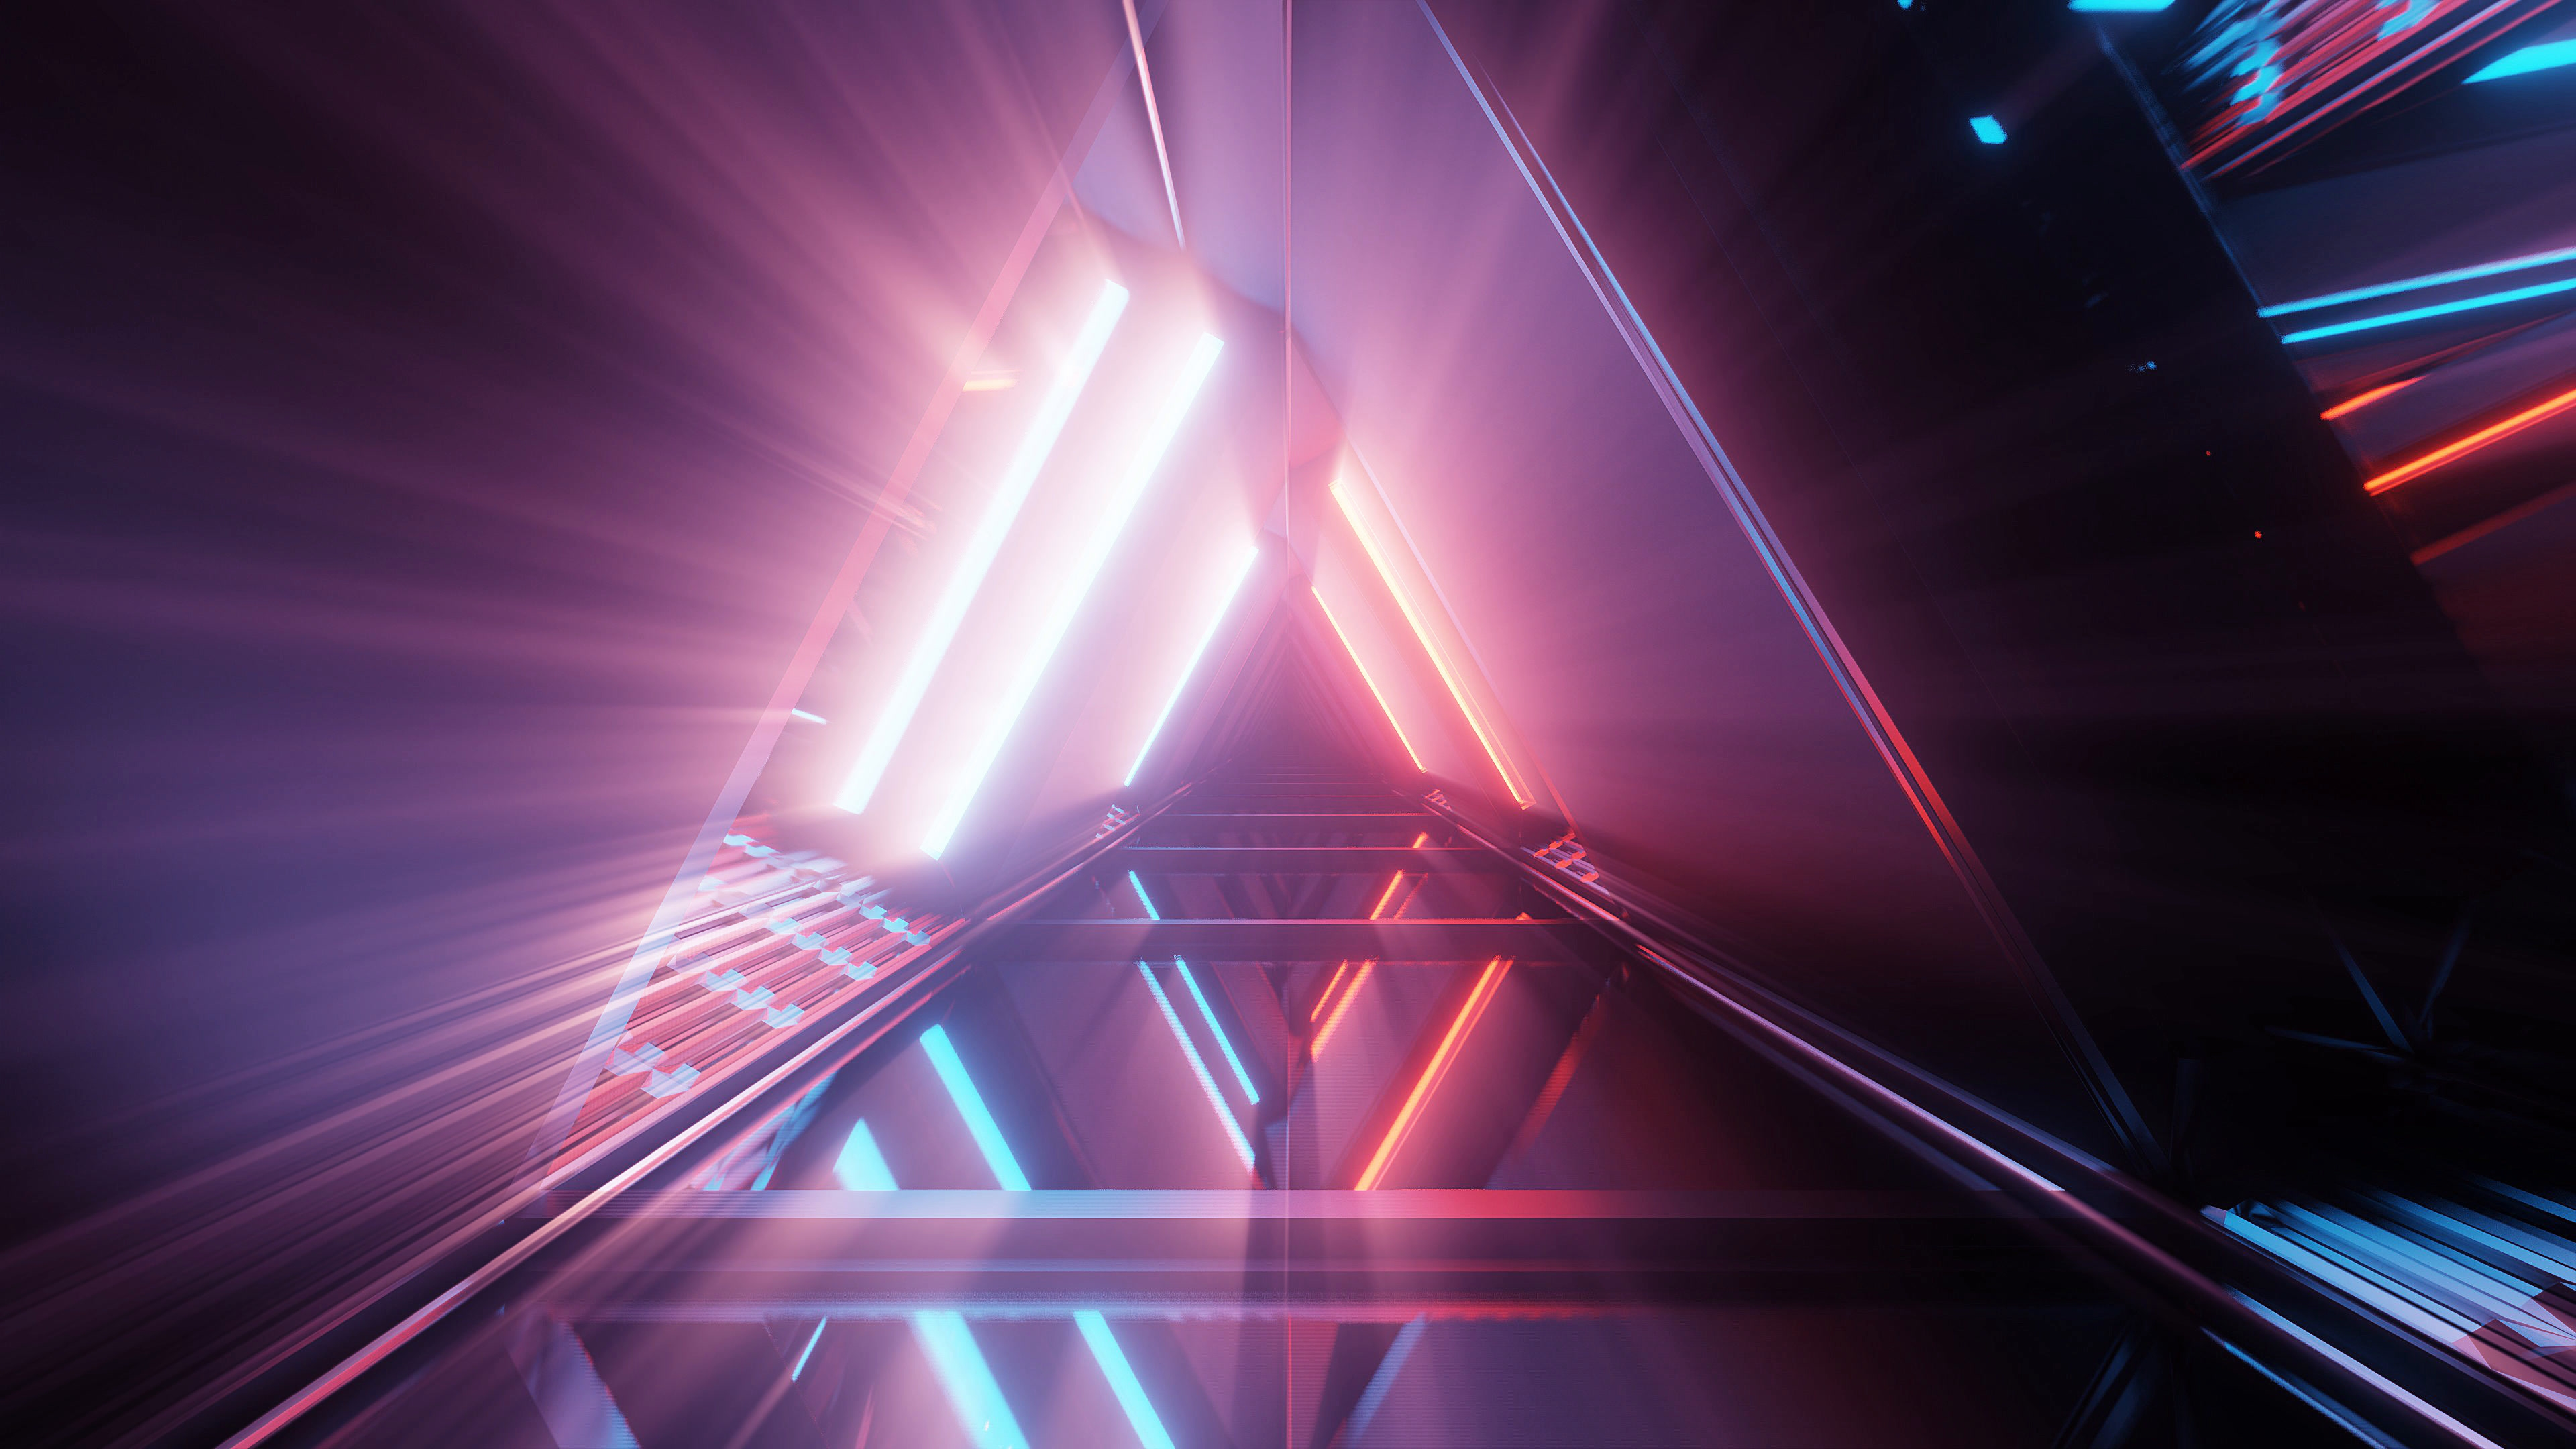 A portal of beautiful neon lights with glowing purple and blue lines in a tunnel - great for an abstract background